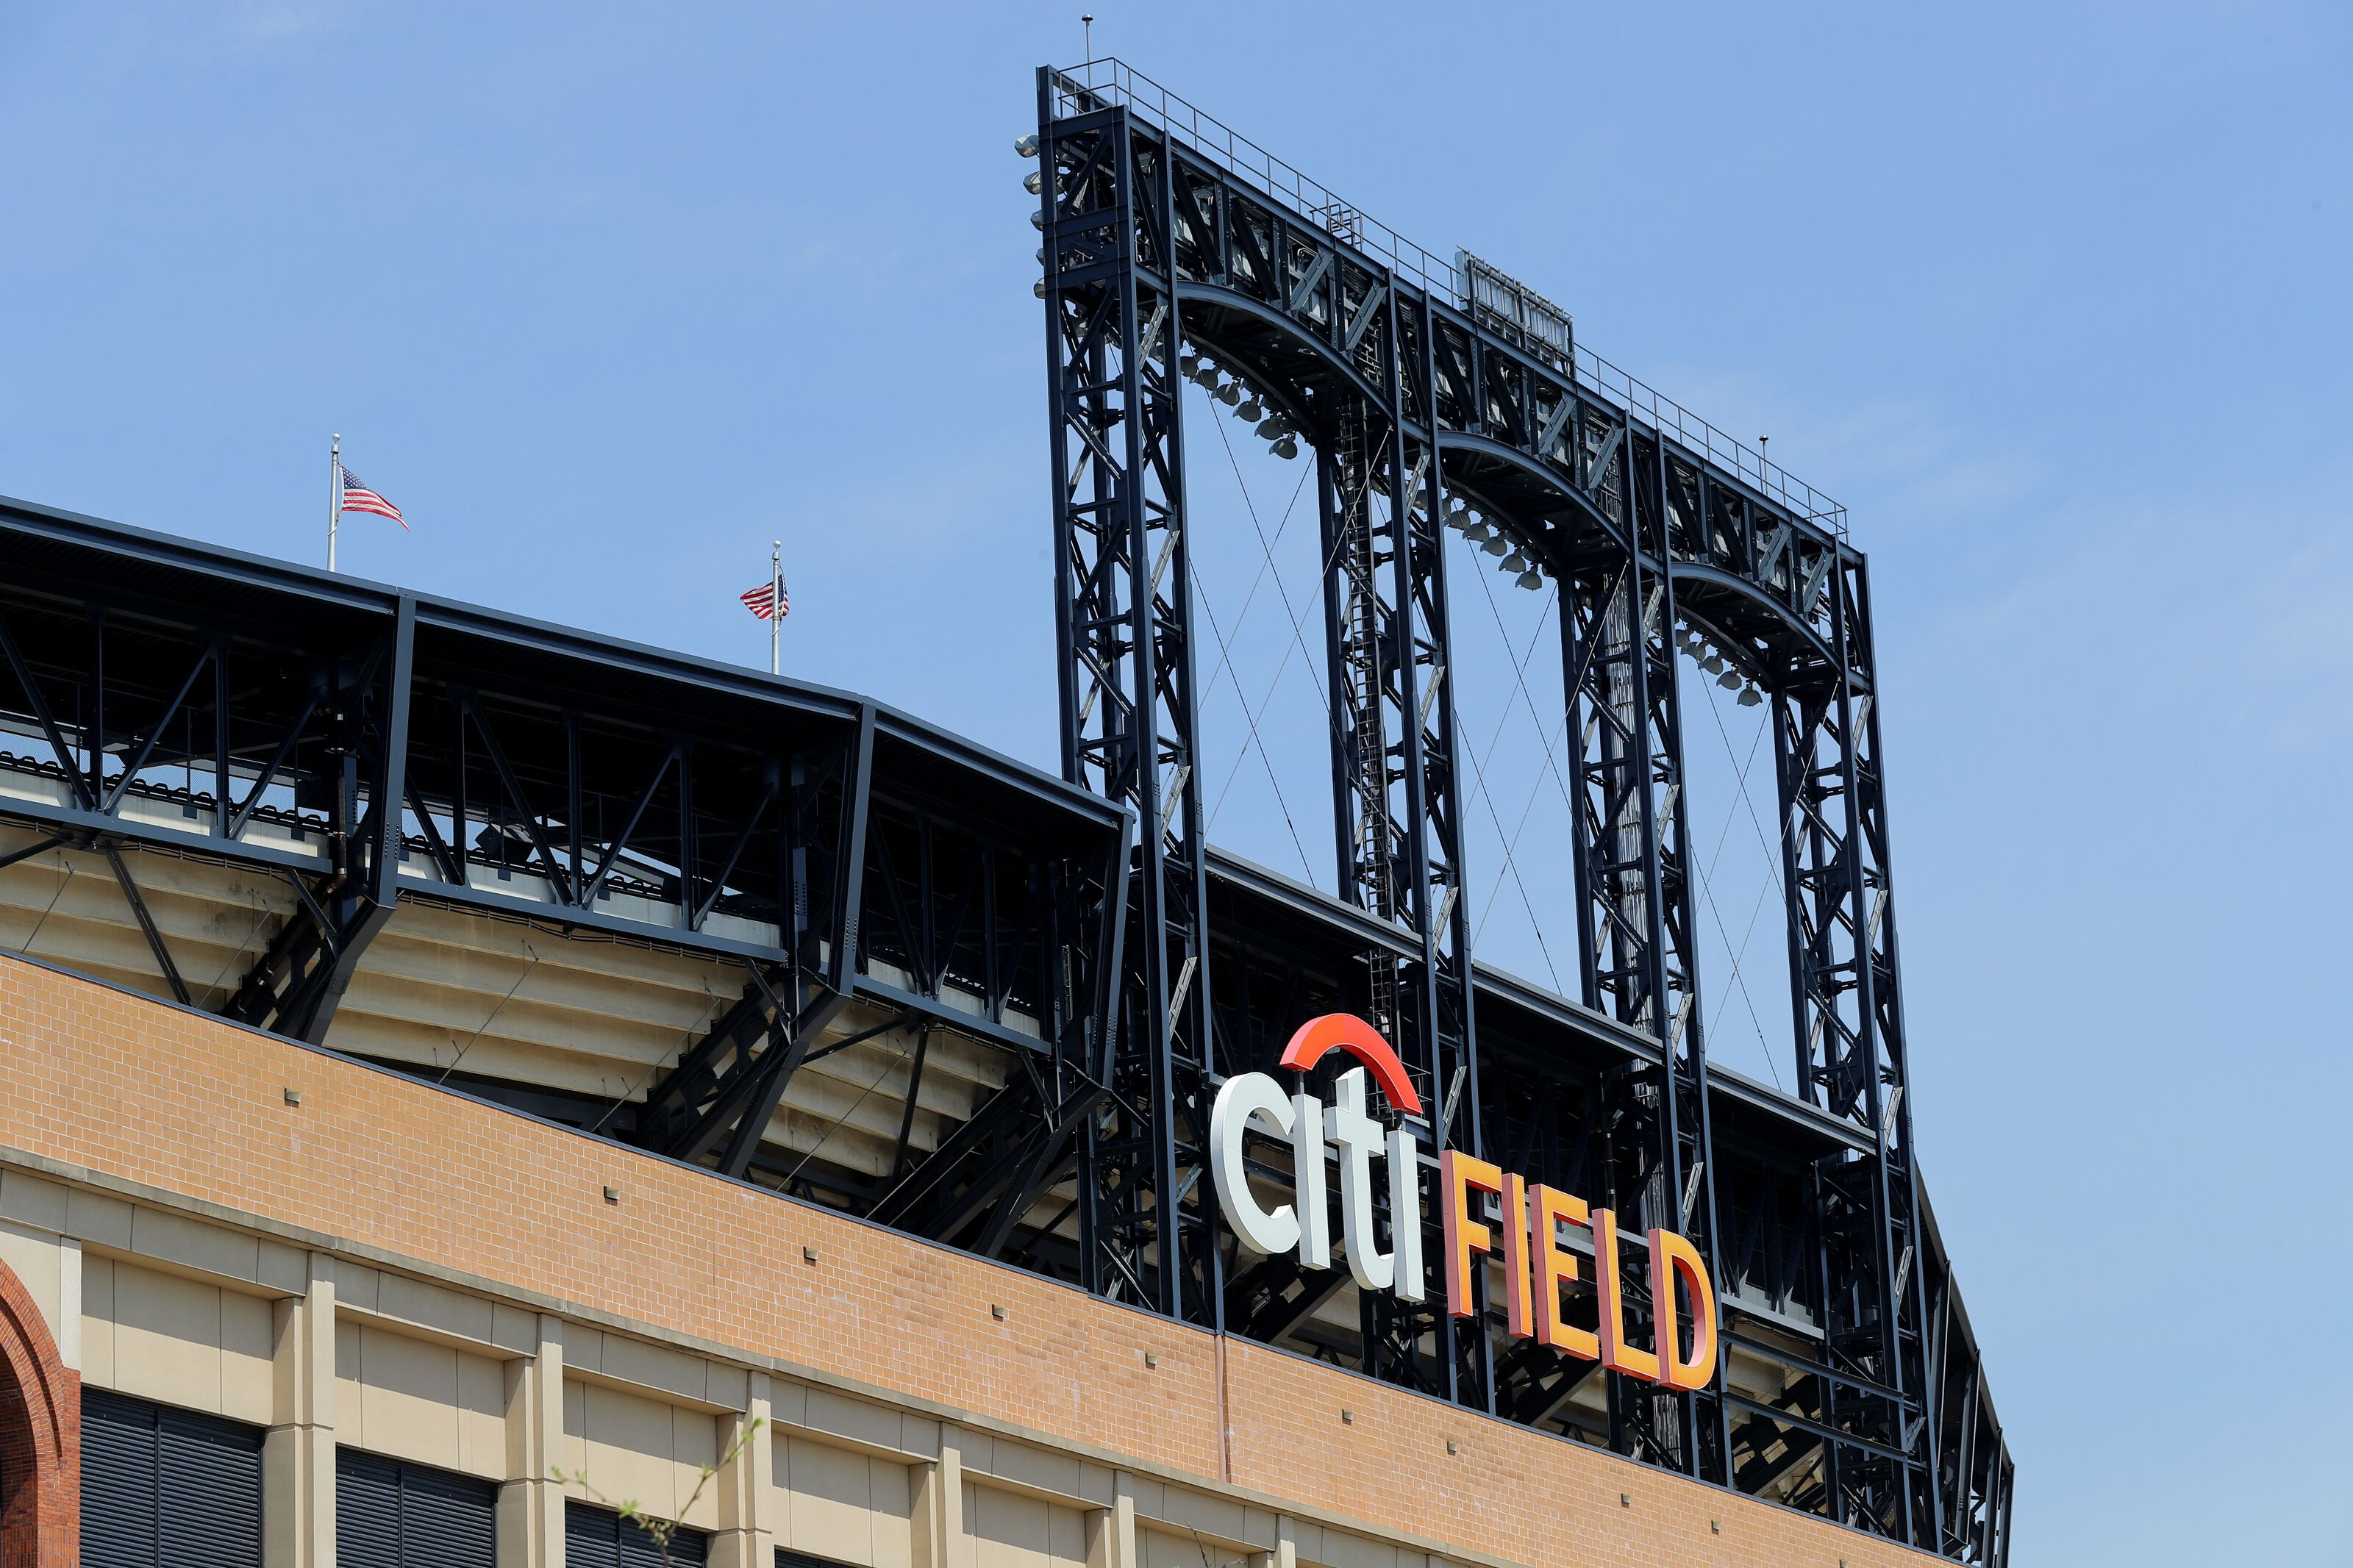 New York Mets: Citi Field site of small fire